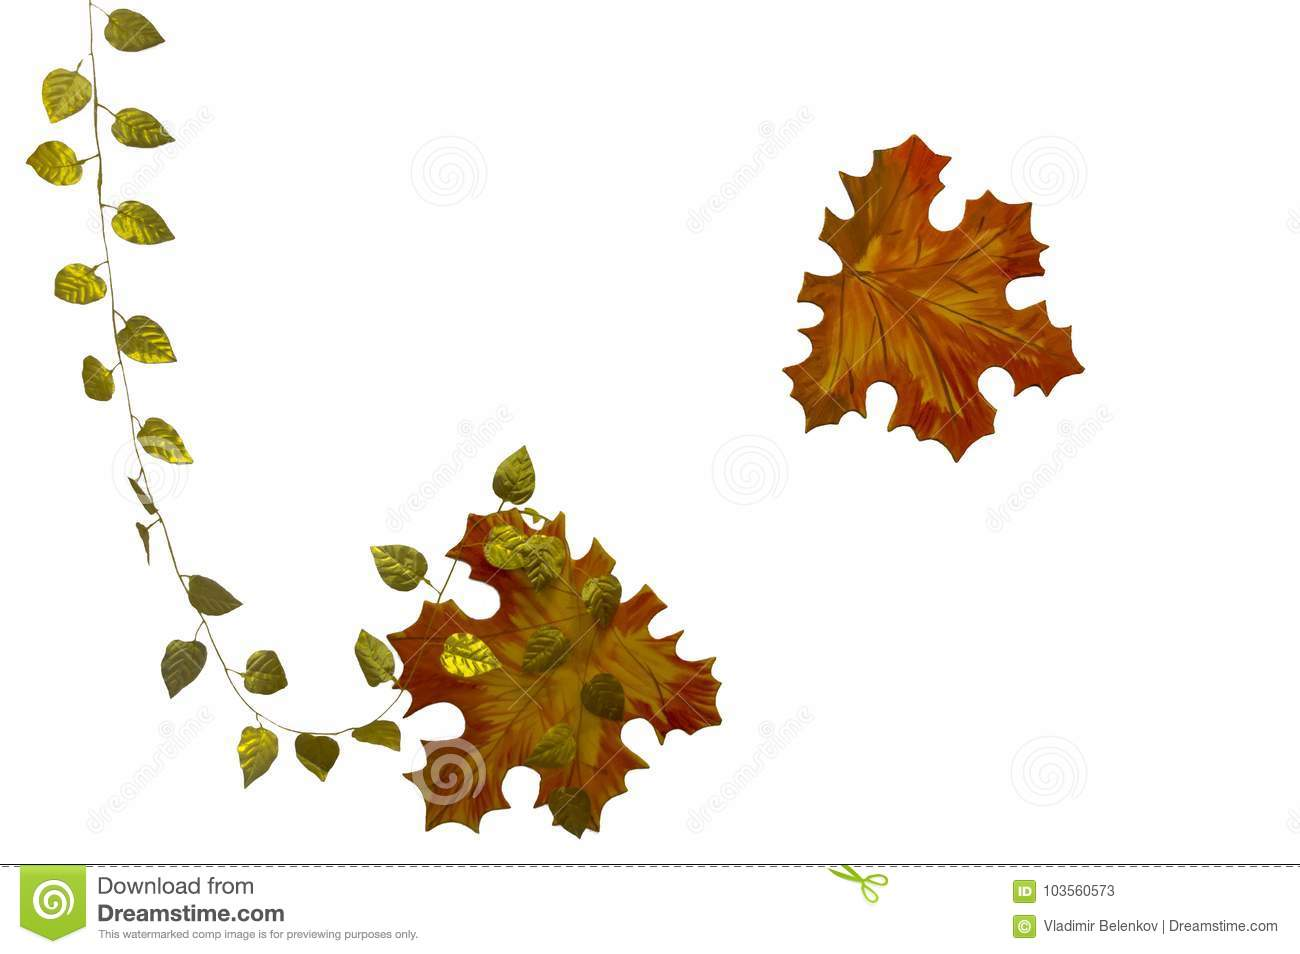 Maple leaf with frame 2 stock image. Image of flying - 103560573